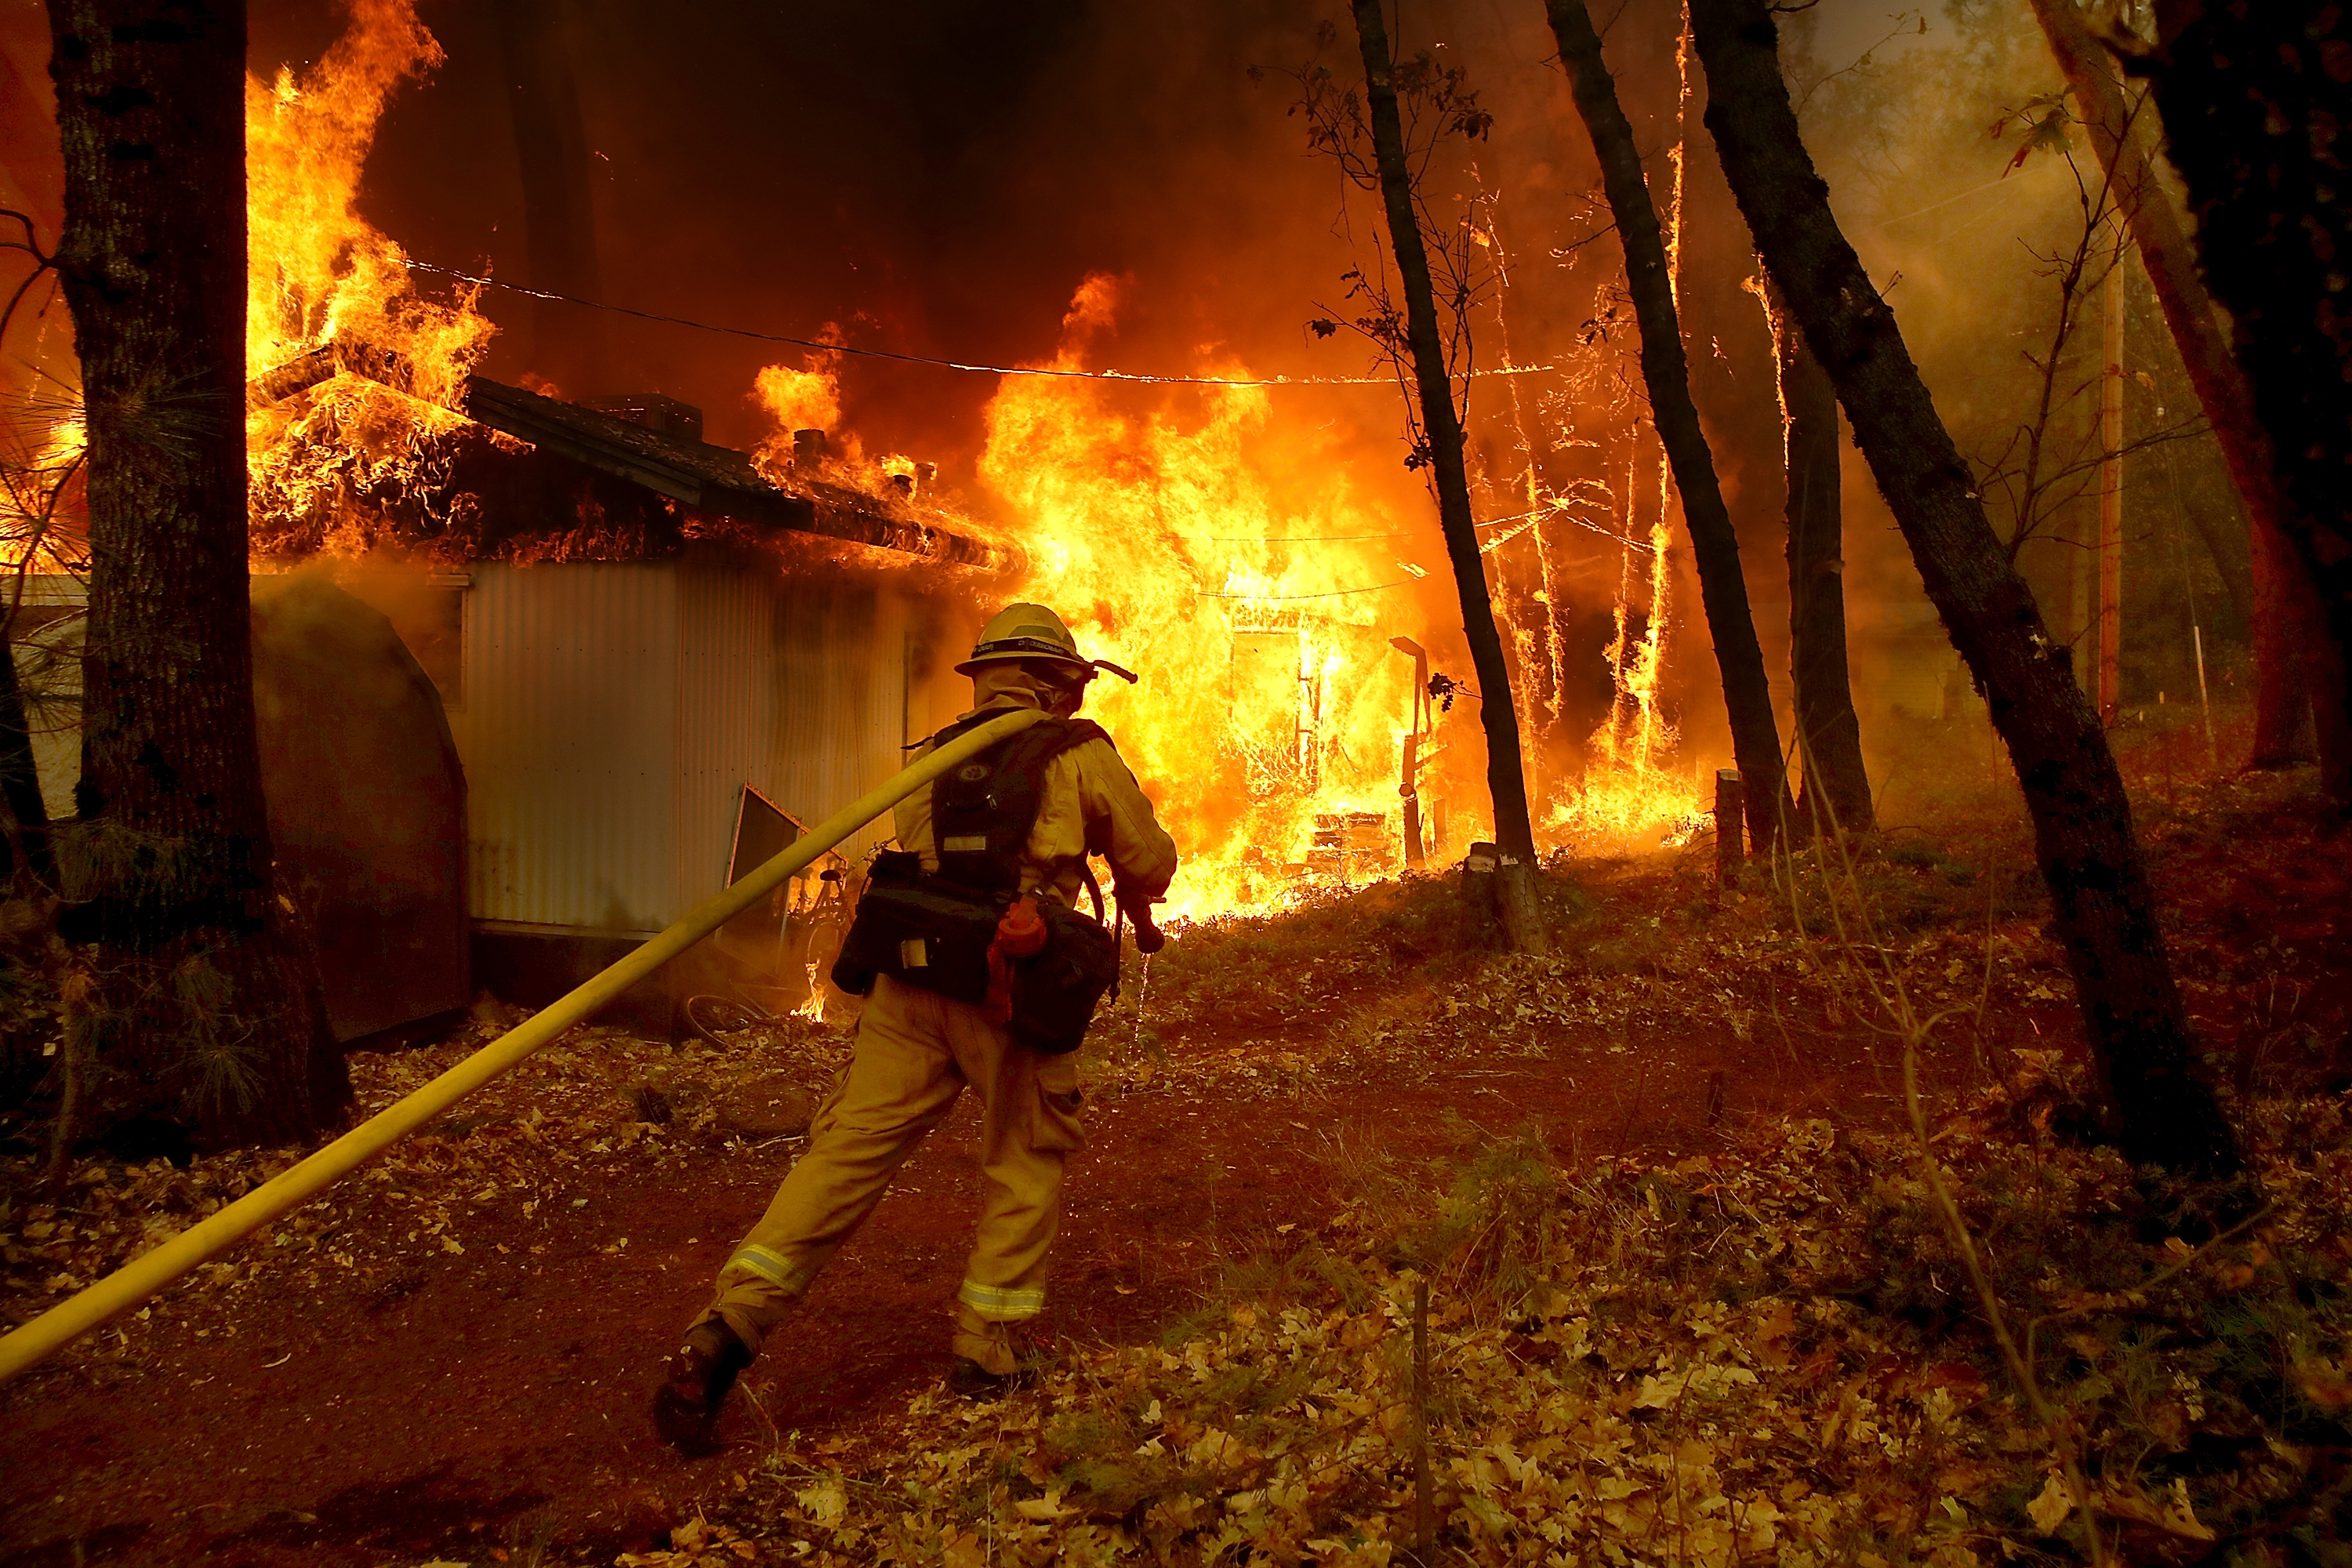 MAGALIA, CA - NOVEMBER 09: A Cal Fire firefighter pulls a hose towards a burning home as the Camp Fire moves through the area on November 9, 2018 in Magalia, California. Fueled by high winds and low humidity, the rapidly spreading Camp Fire ripped through the town of Paradise and has quickly charred 70,000 acres and has destroyed numerous homes and businesses in a matter of hours. (Photo by Justin Sullivan/Getty Images)